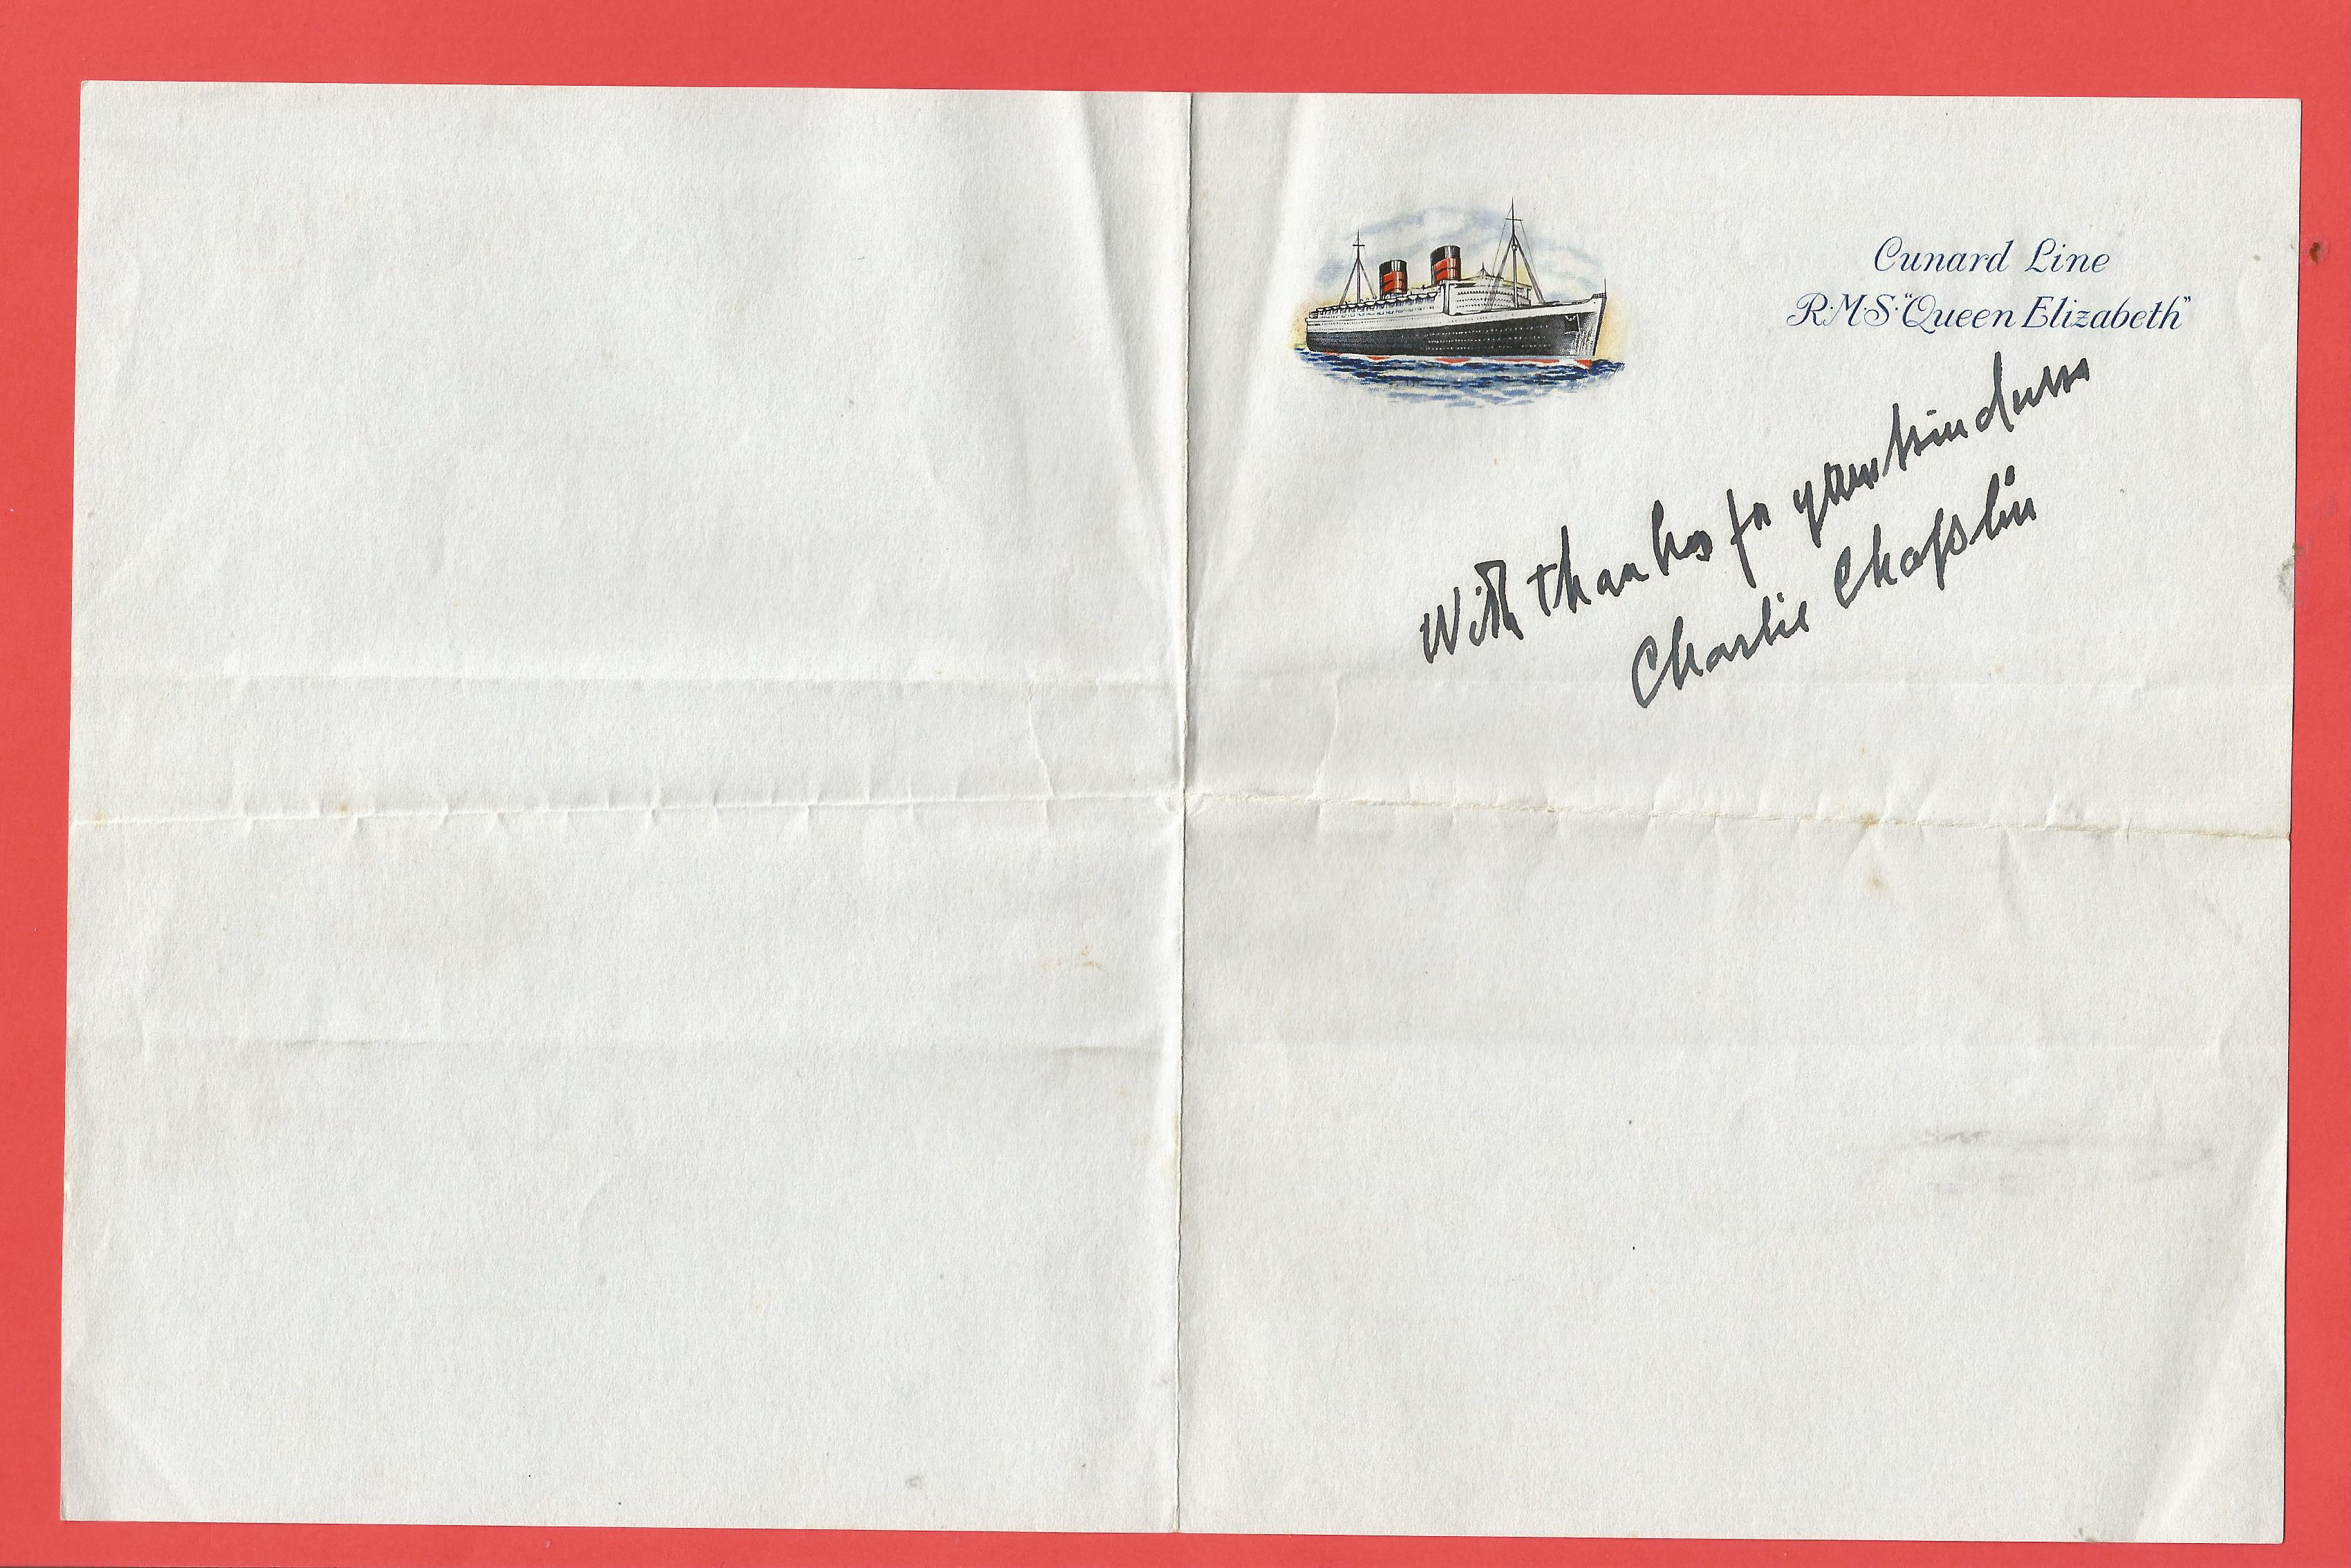 Charlie Chaplin signed Cunard Line R. M. S Queen Elizabeth headed note paper. Comes from the